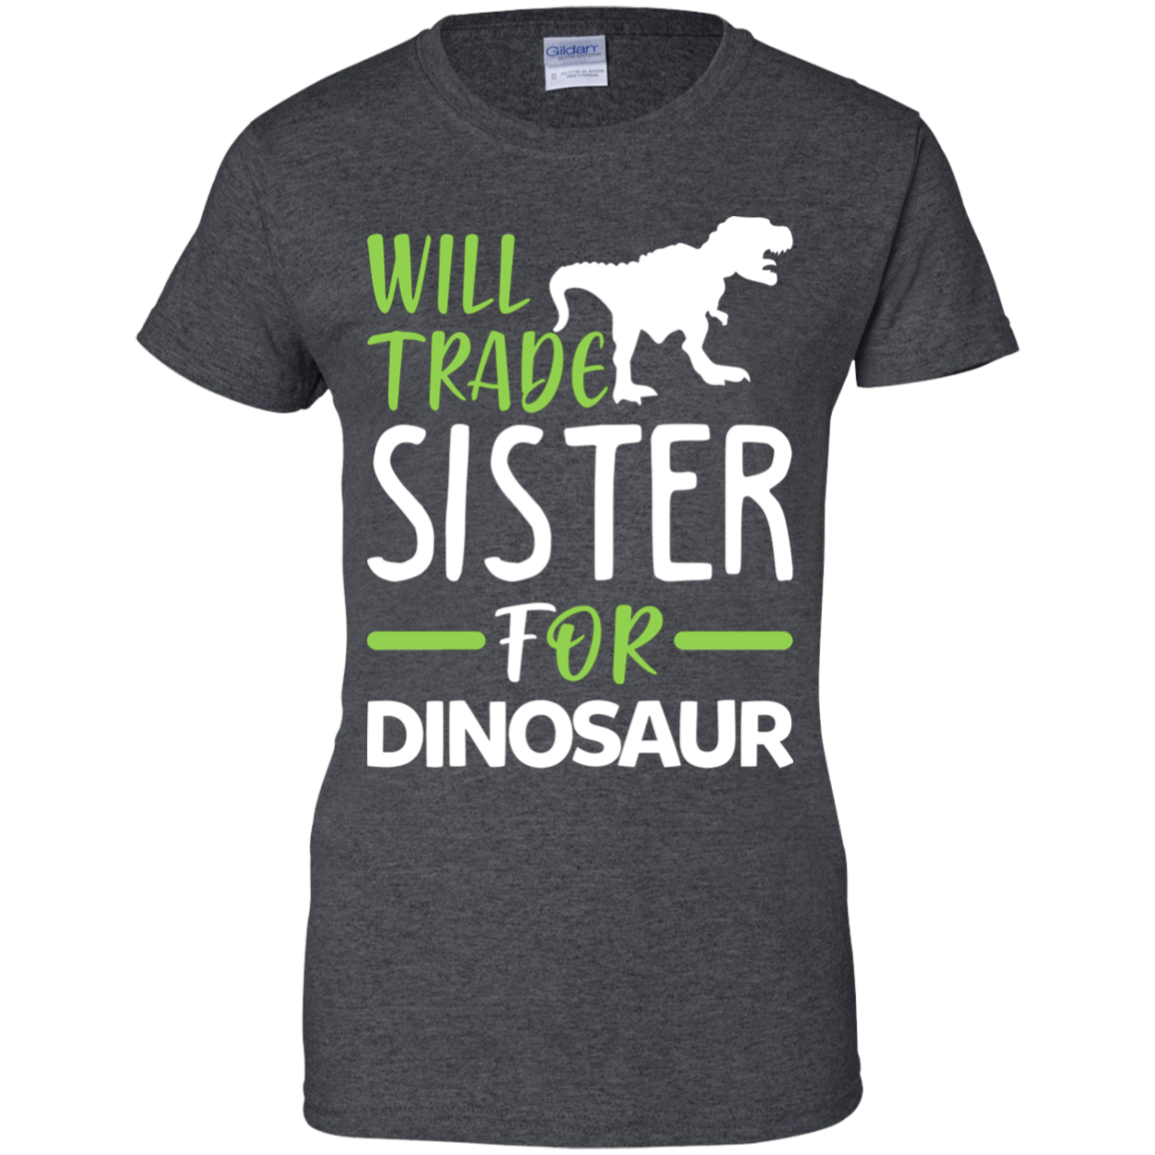 ae65d879 Funny Sister Sayings T Shirts - DREAMWORKS